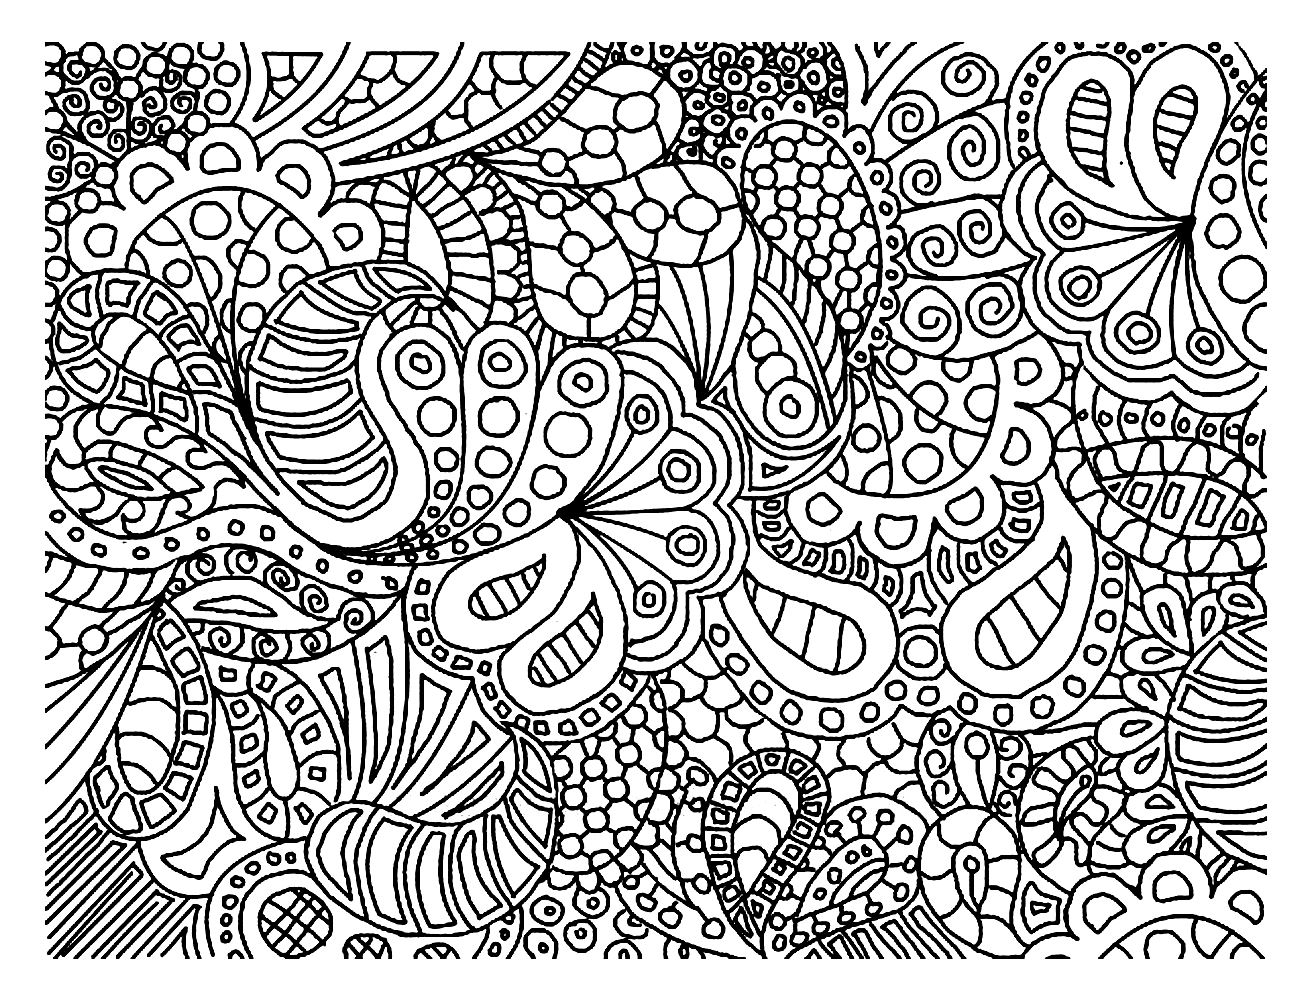 coloring sheet things to color doll coloring pages to download and print for free sheet color things coloring to